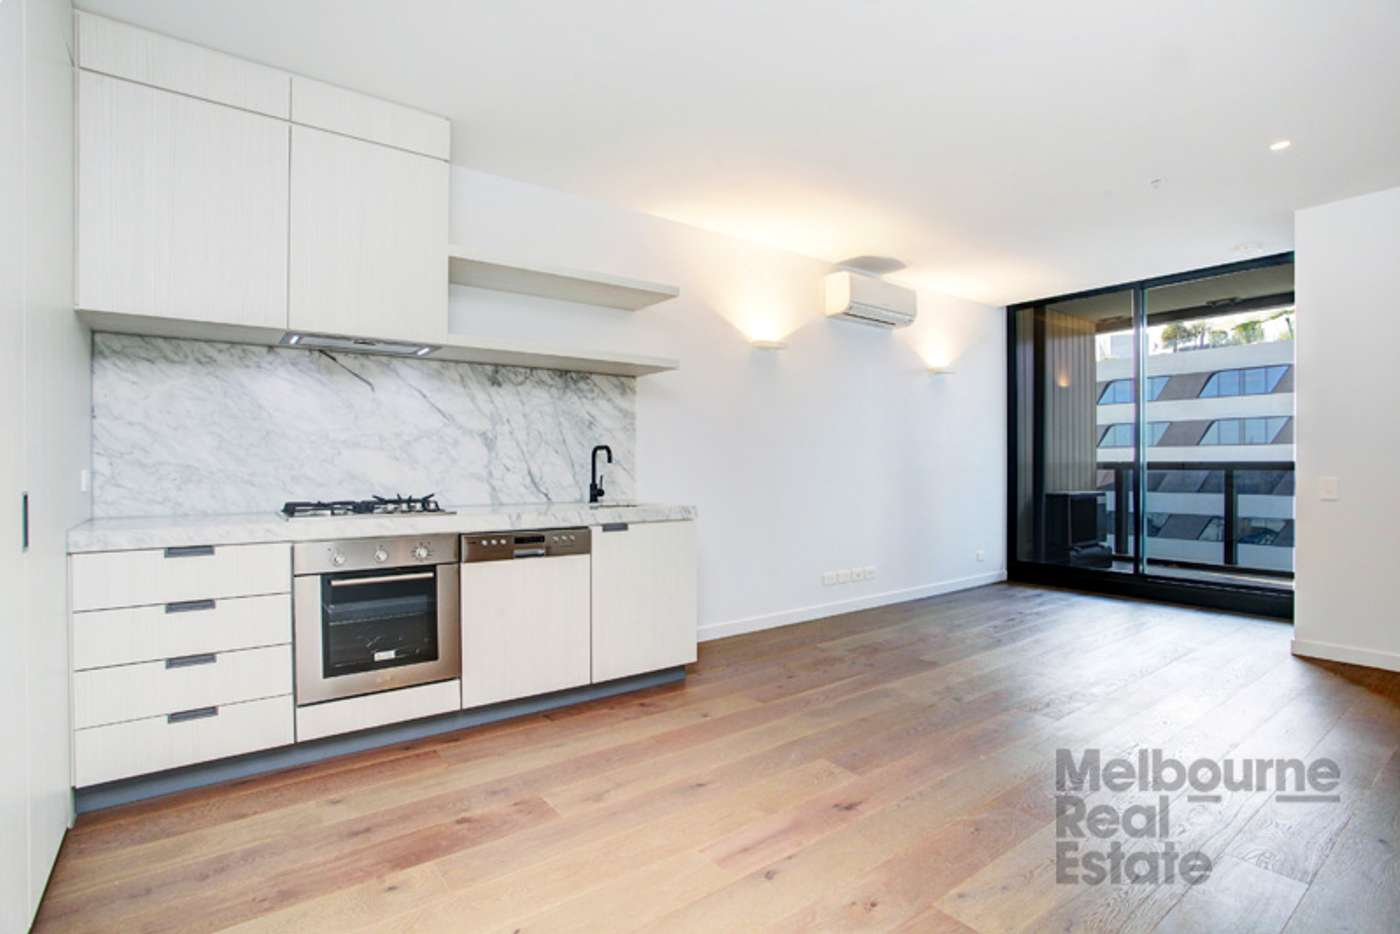 Main view of Homely apartment listing, 707/33 Blackwood Street, North Melbourne VIC 3051